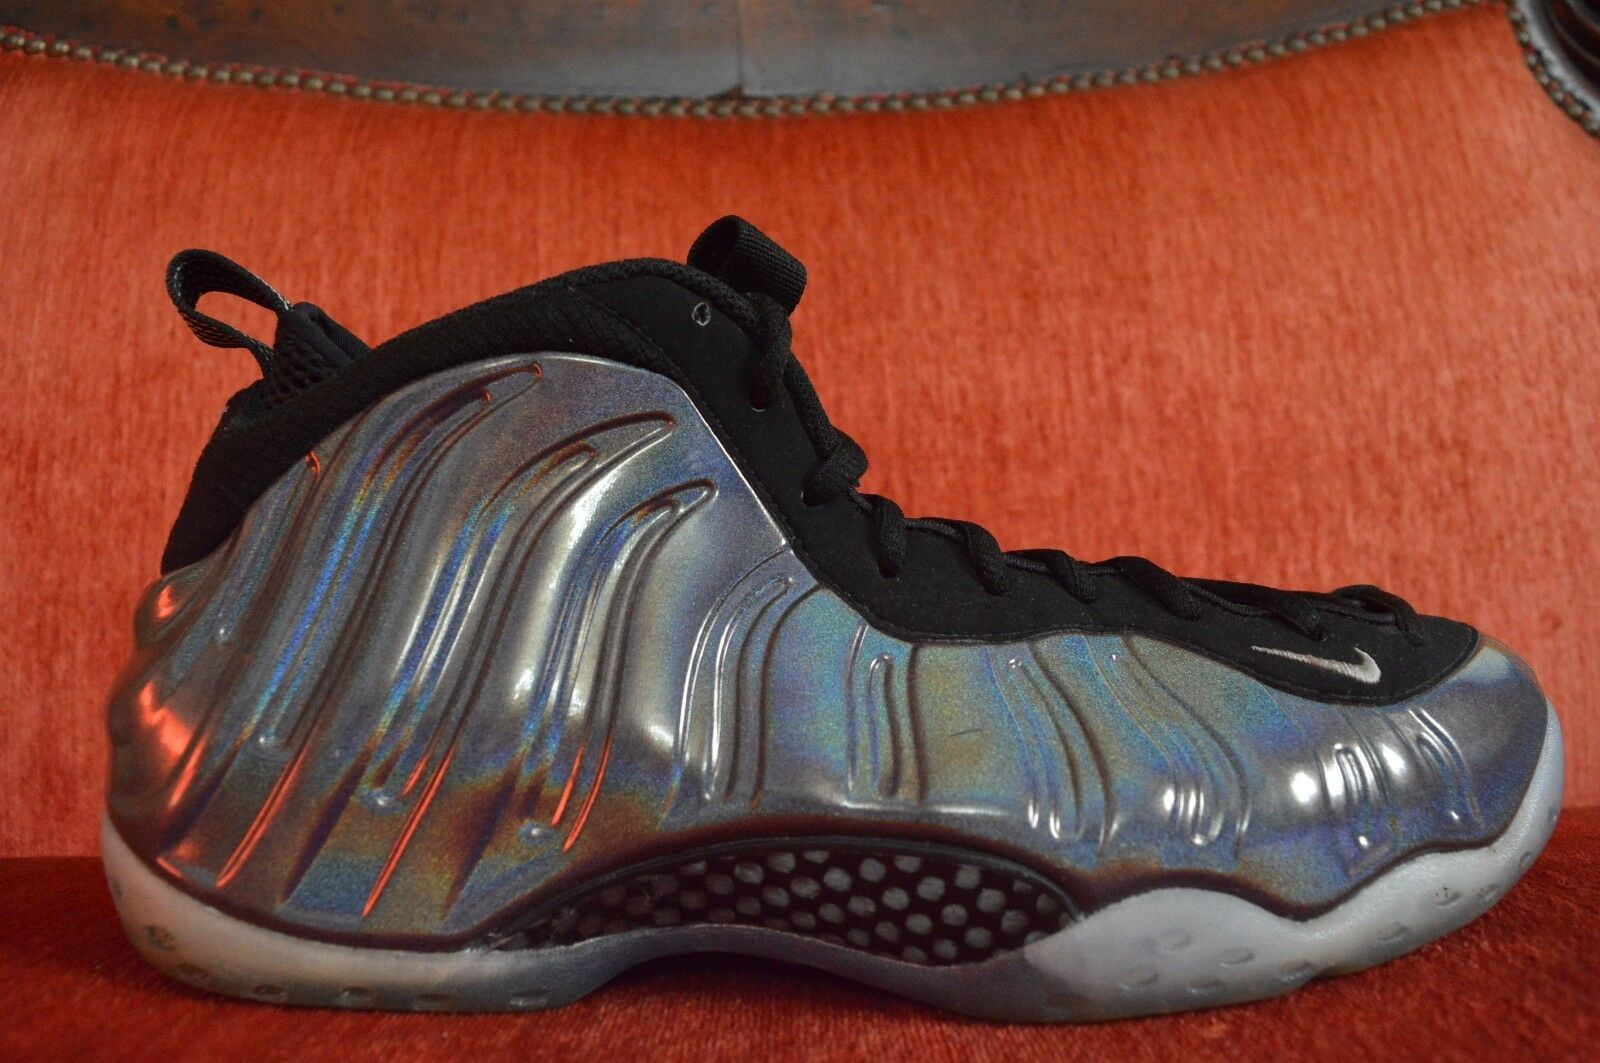 9+/10 NIKE AIR FOAMPOSITE ONE MULTI COLOR-SILVER HOLOGRAM 314996-900 Comfortable Great discount